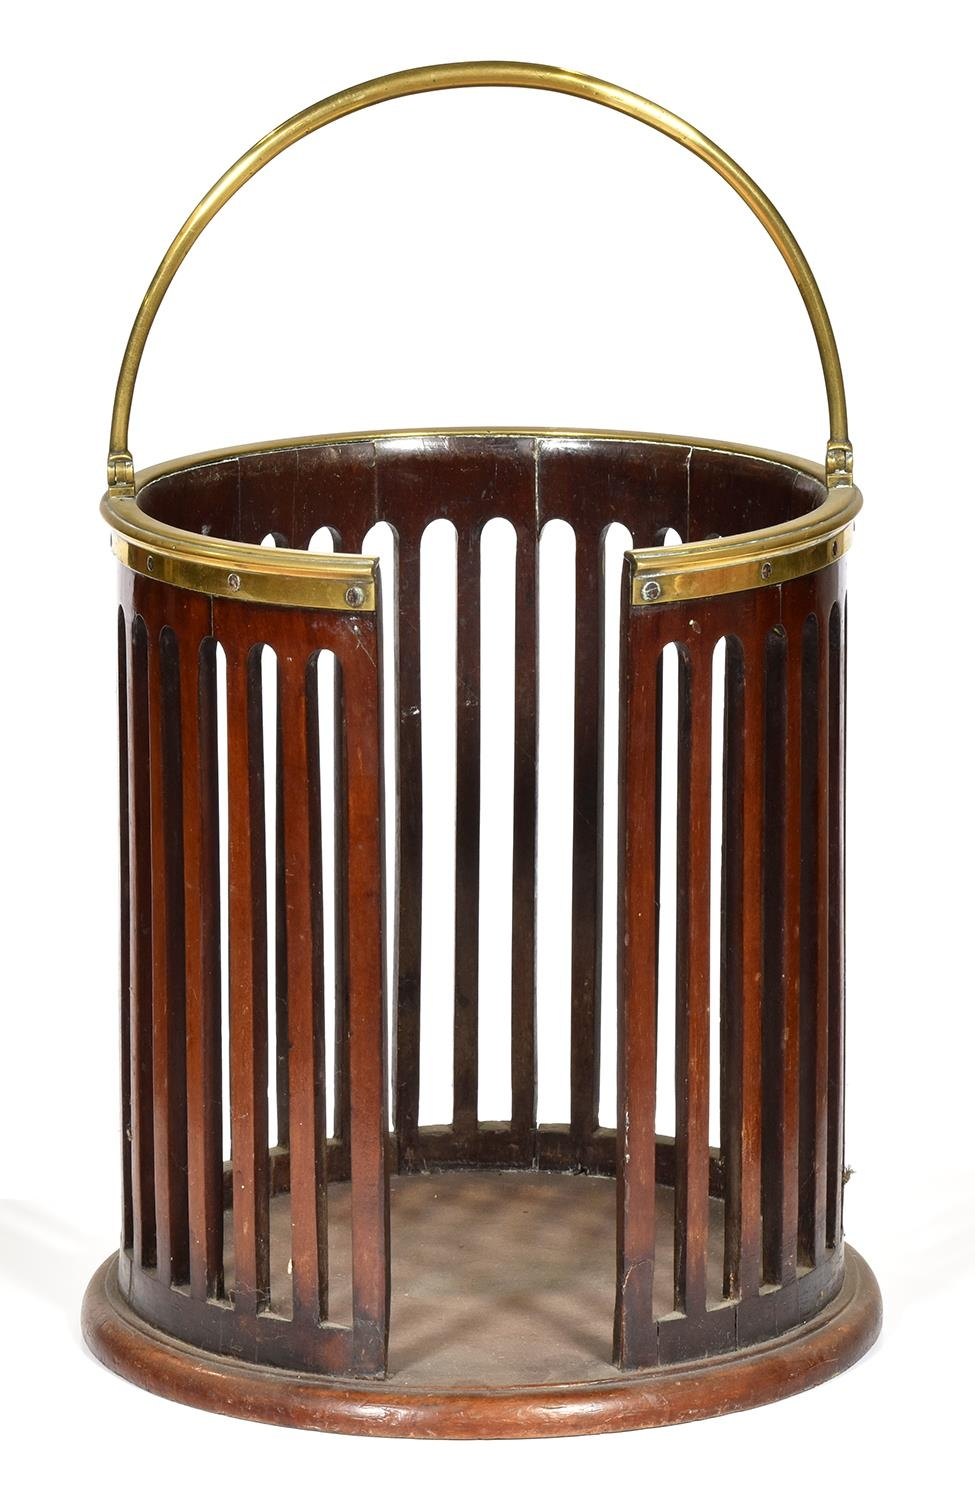 A George III brass mounted mahogany plate bucket, early 19th c, with moulded brass rim and swing